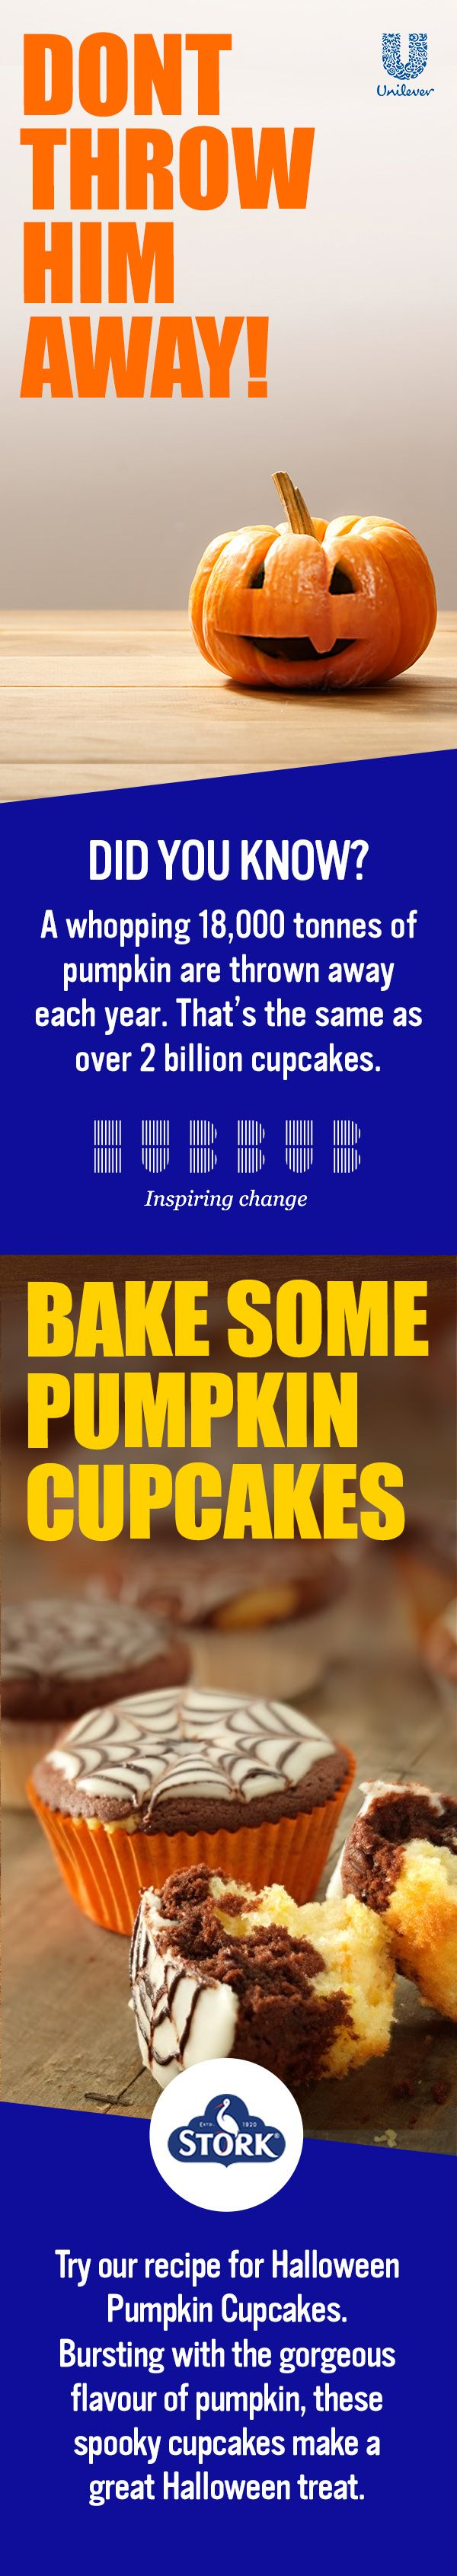 Did you know: A whopping 18,000 tonnes of Pumpkin are thrown away each year? That's the same as over 2 billion cupcakes. Join Hubbub and Unilever in inspiring change. Get involved here: https://brightfuture.unilever.co.uk/stories/494523/Turn-your-carvings